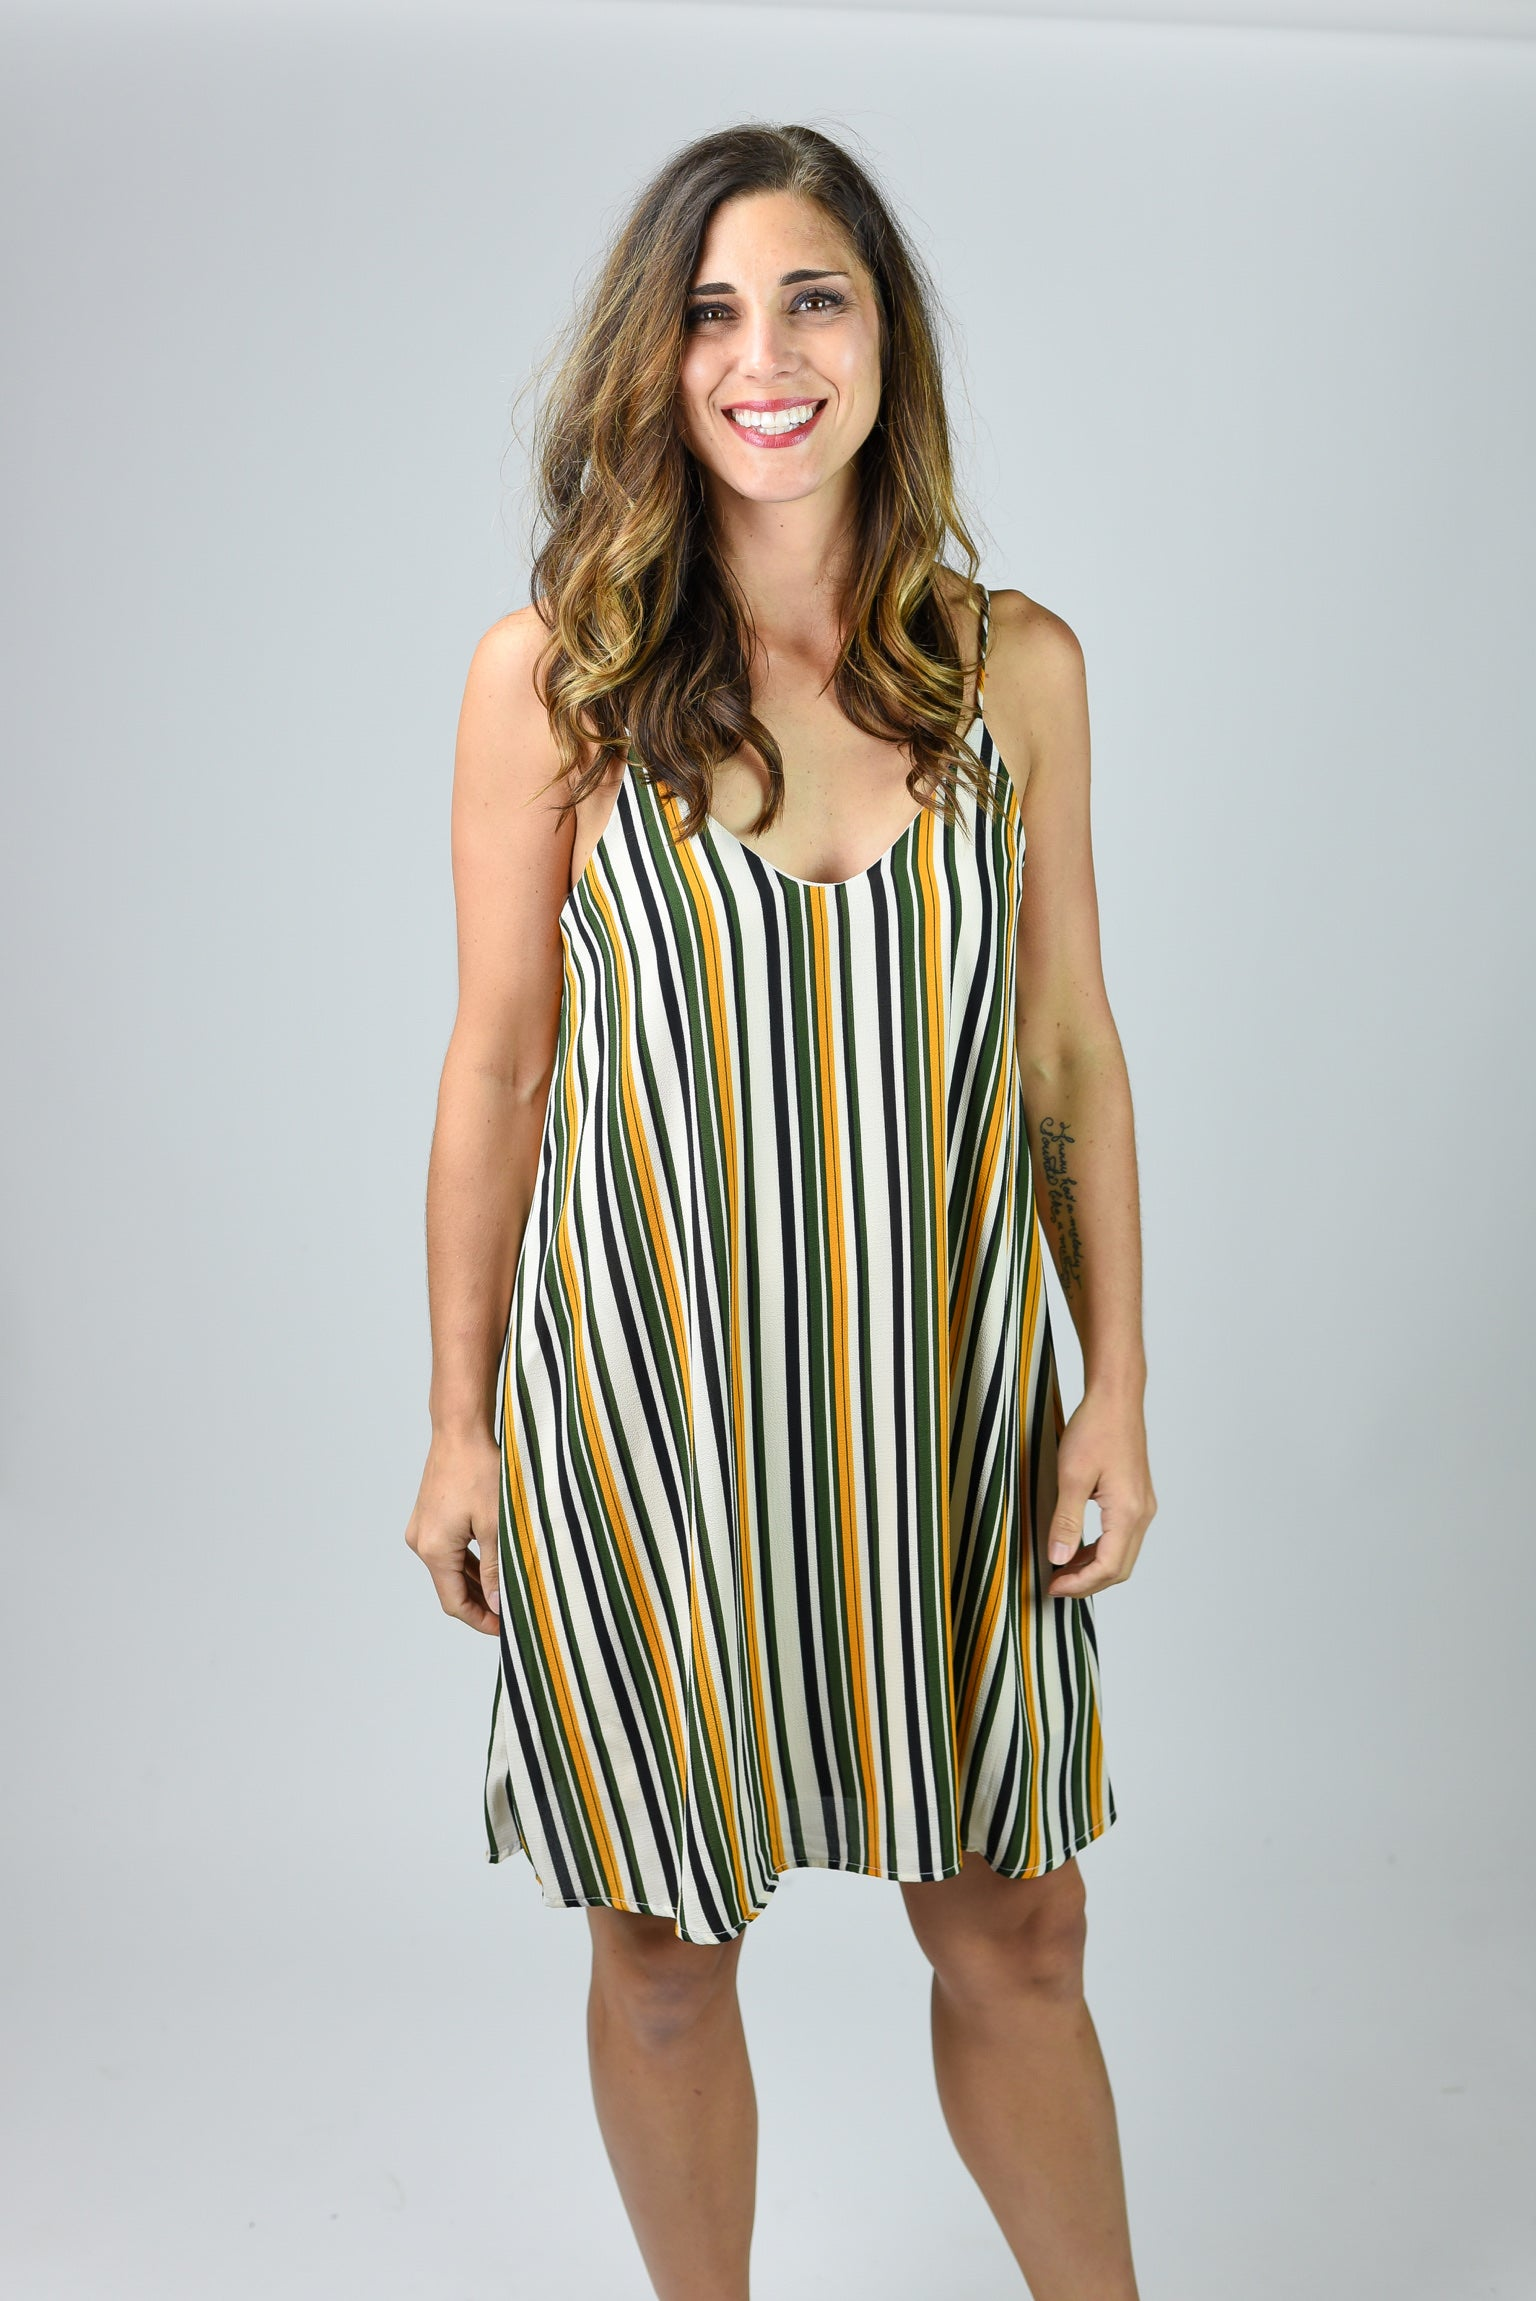 Stir Up The Crowd Stripe Dress- Olive & Mustard